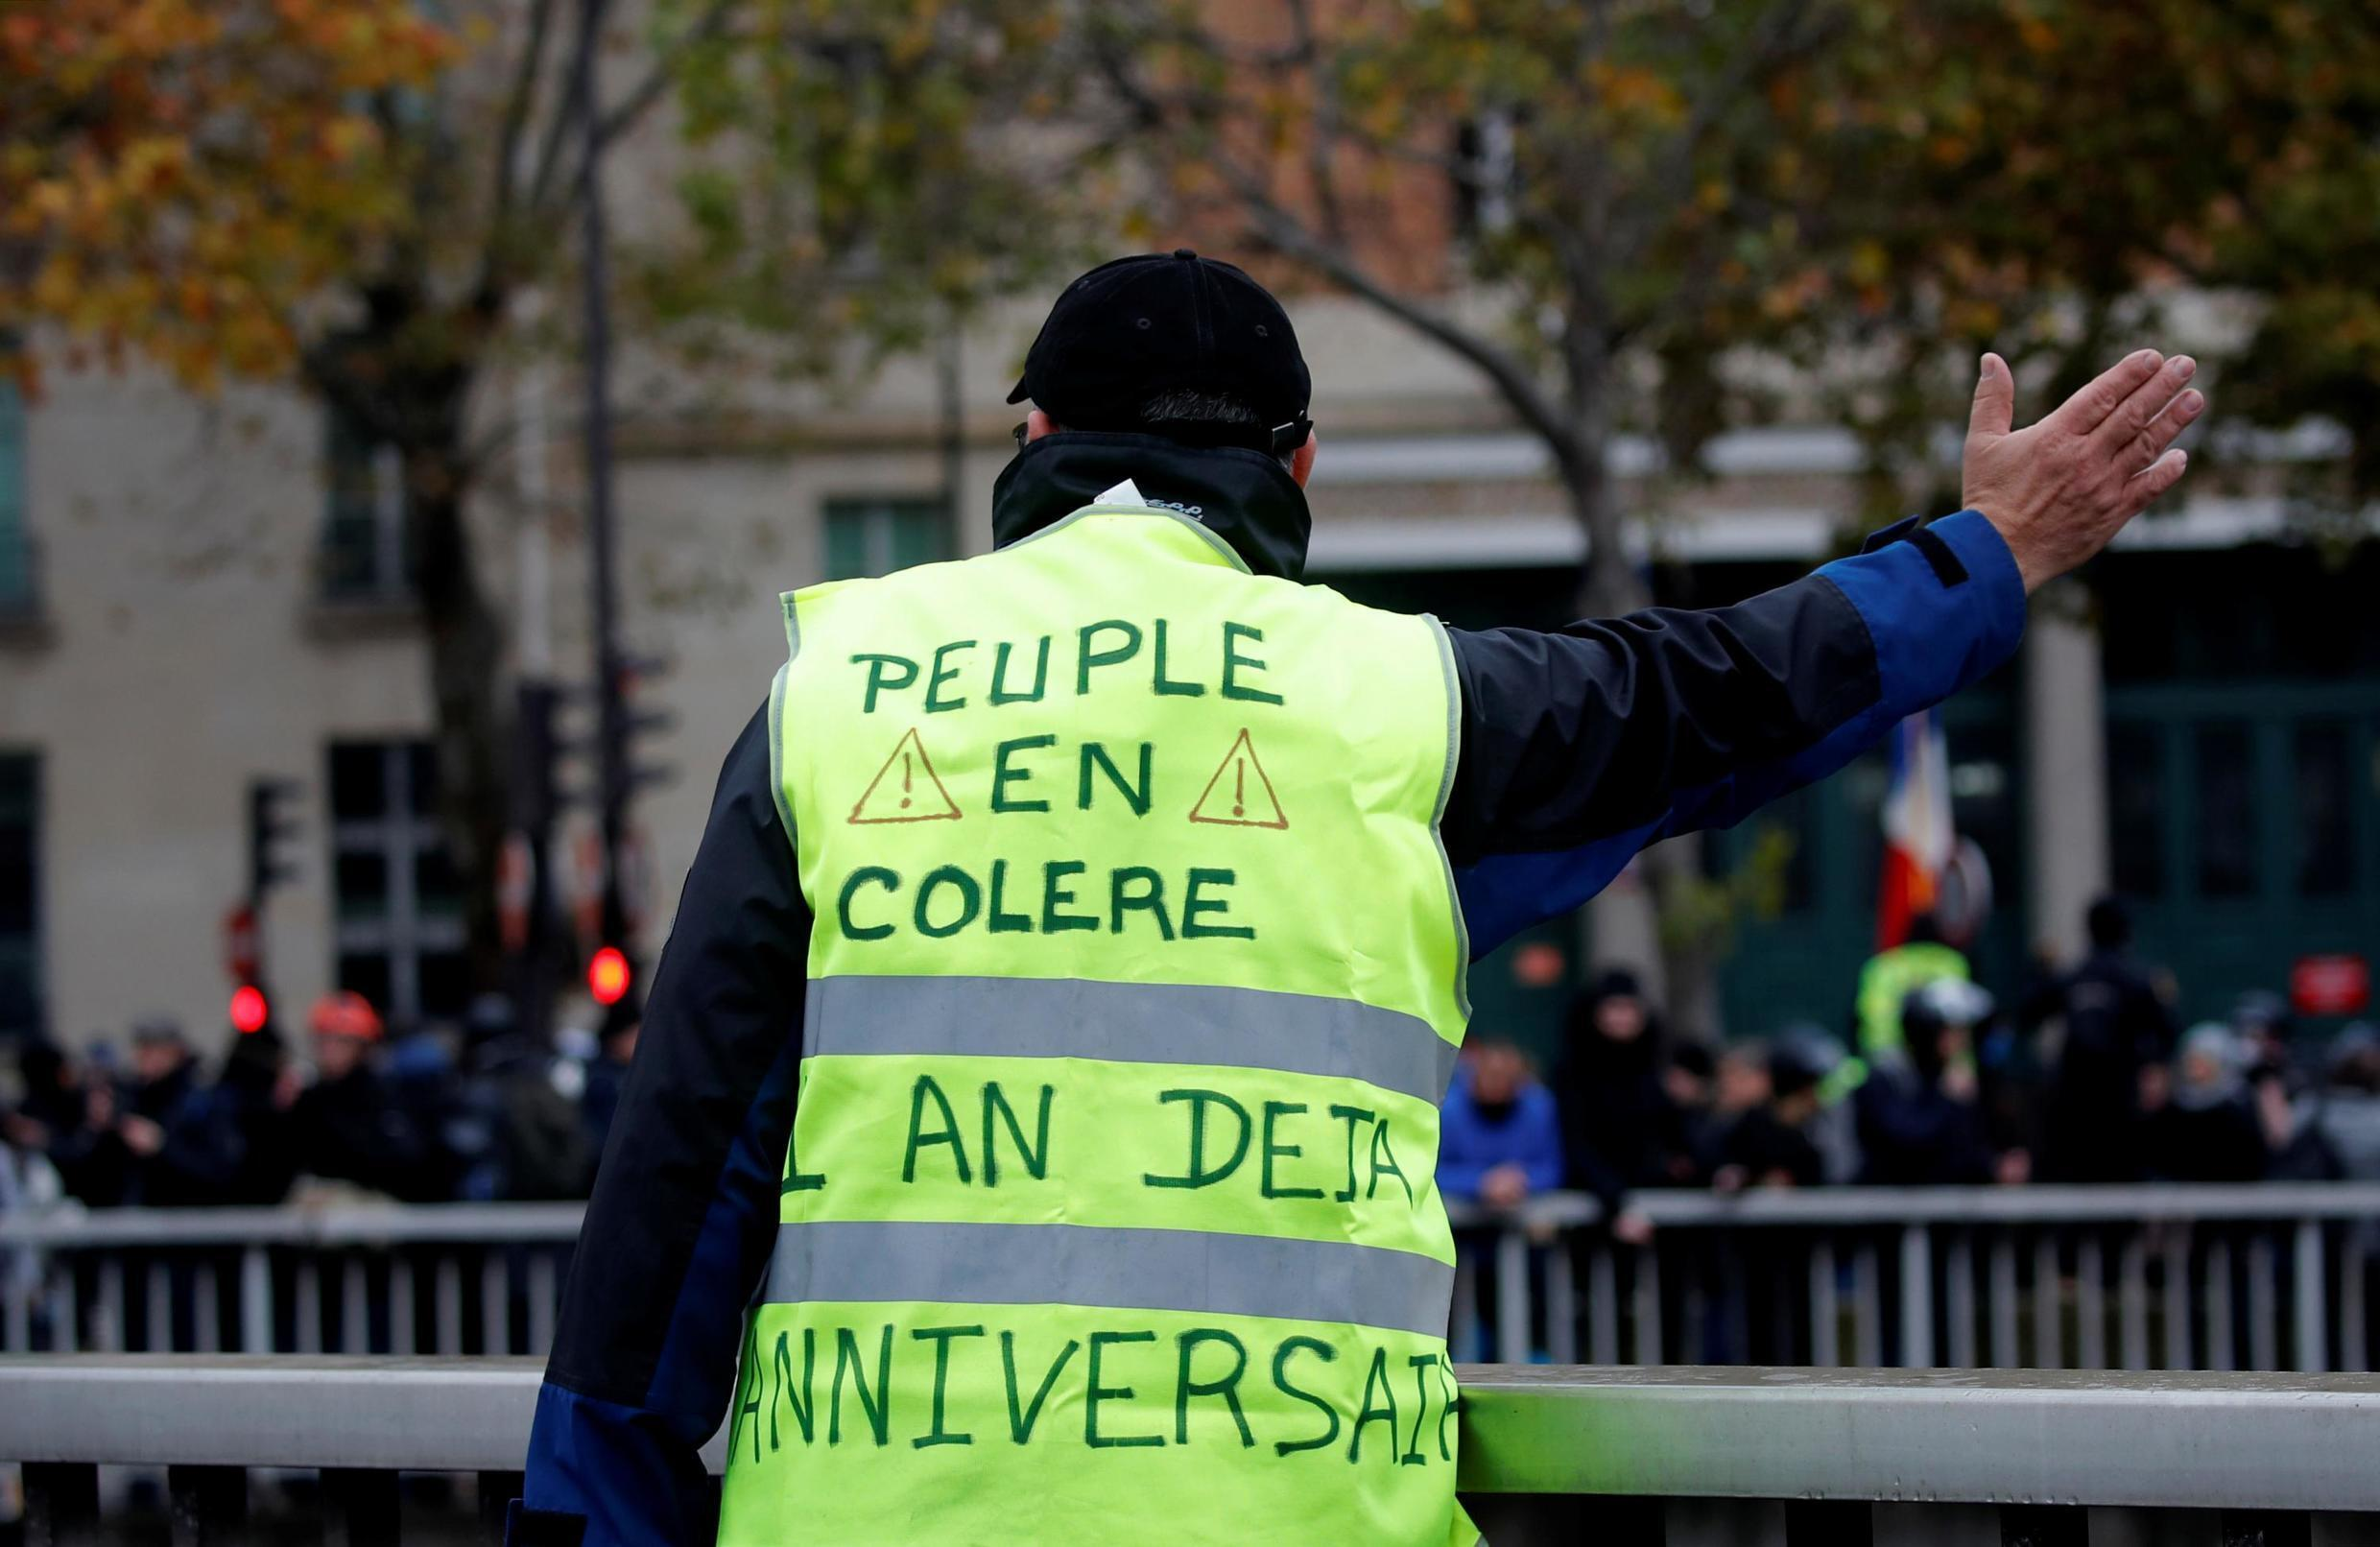 A Yellow Vest protester on November 16, 2019, one year after the protests started.